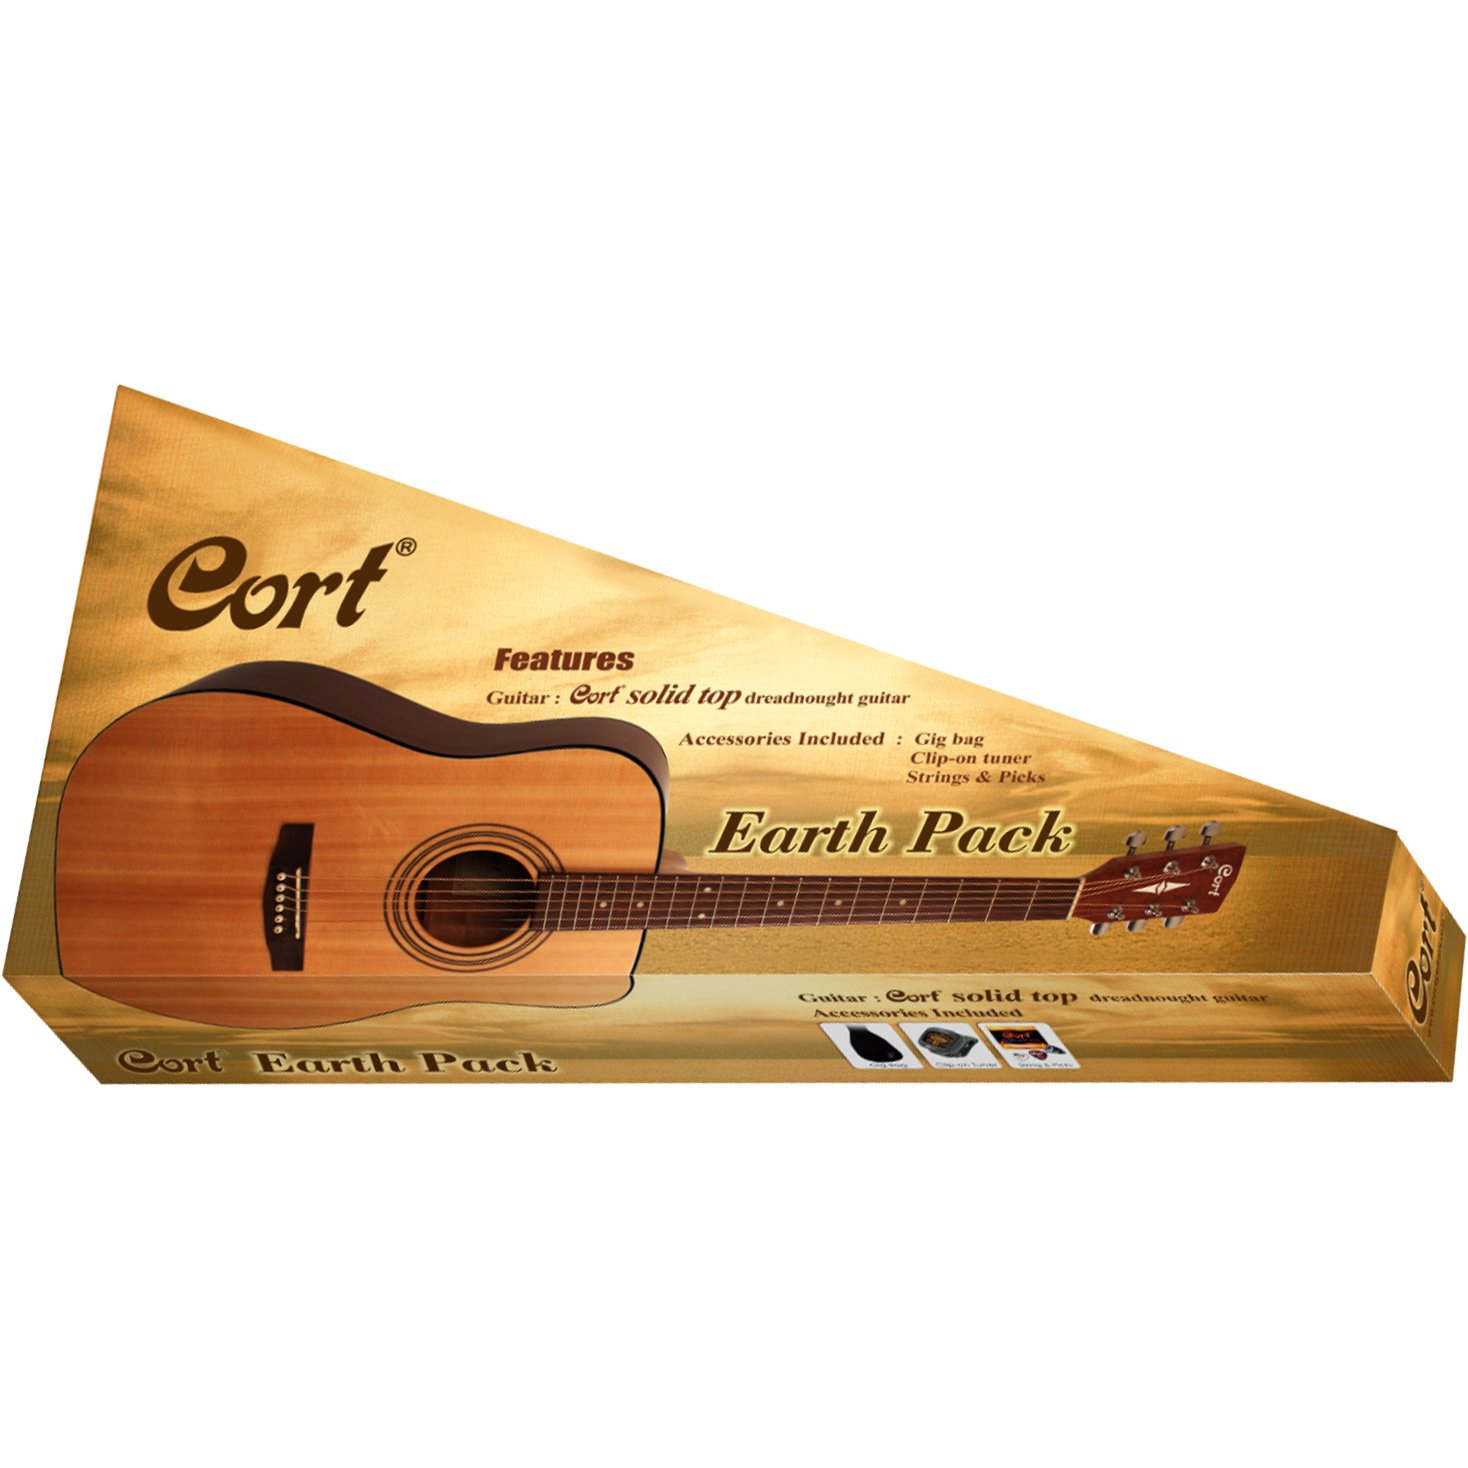 Cort Earth Pack Dreadnought Acoustic Guitar Package, Open Pore